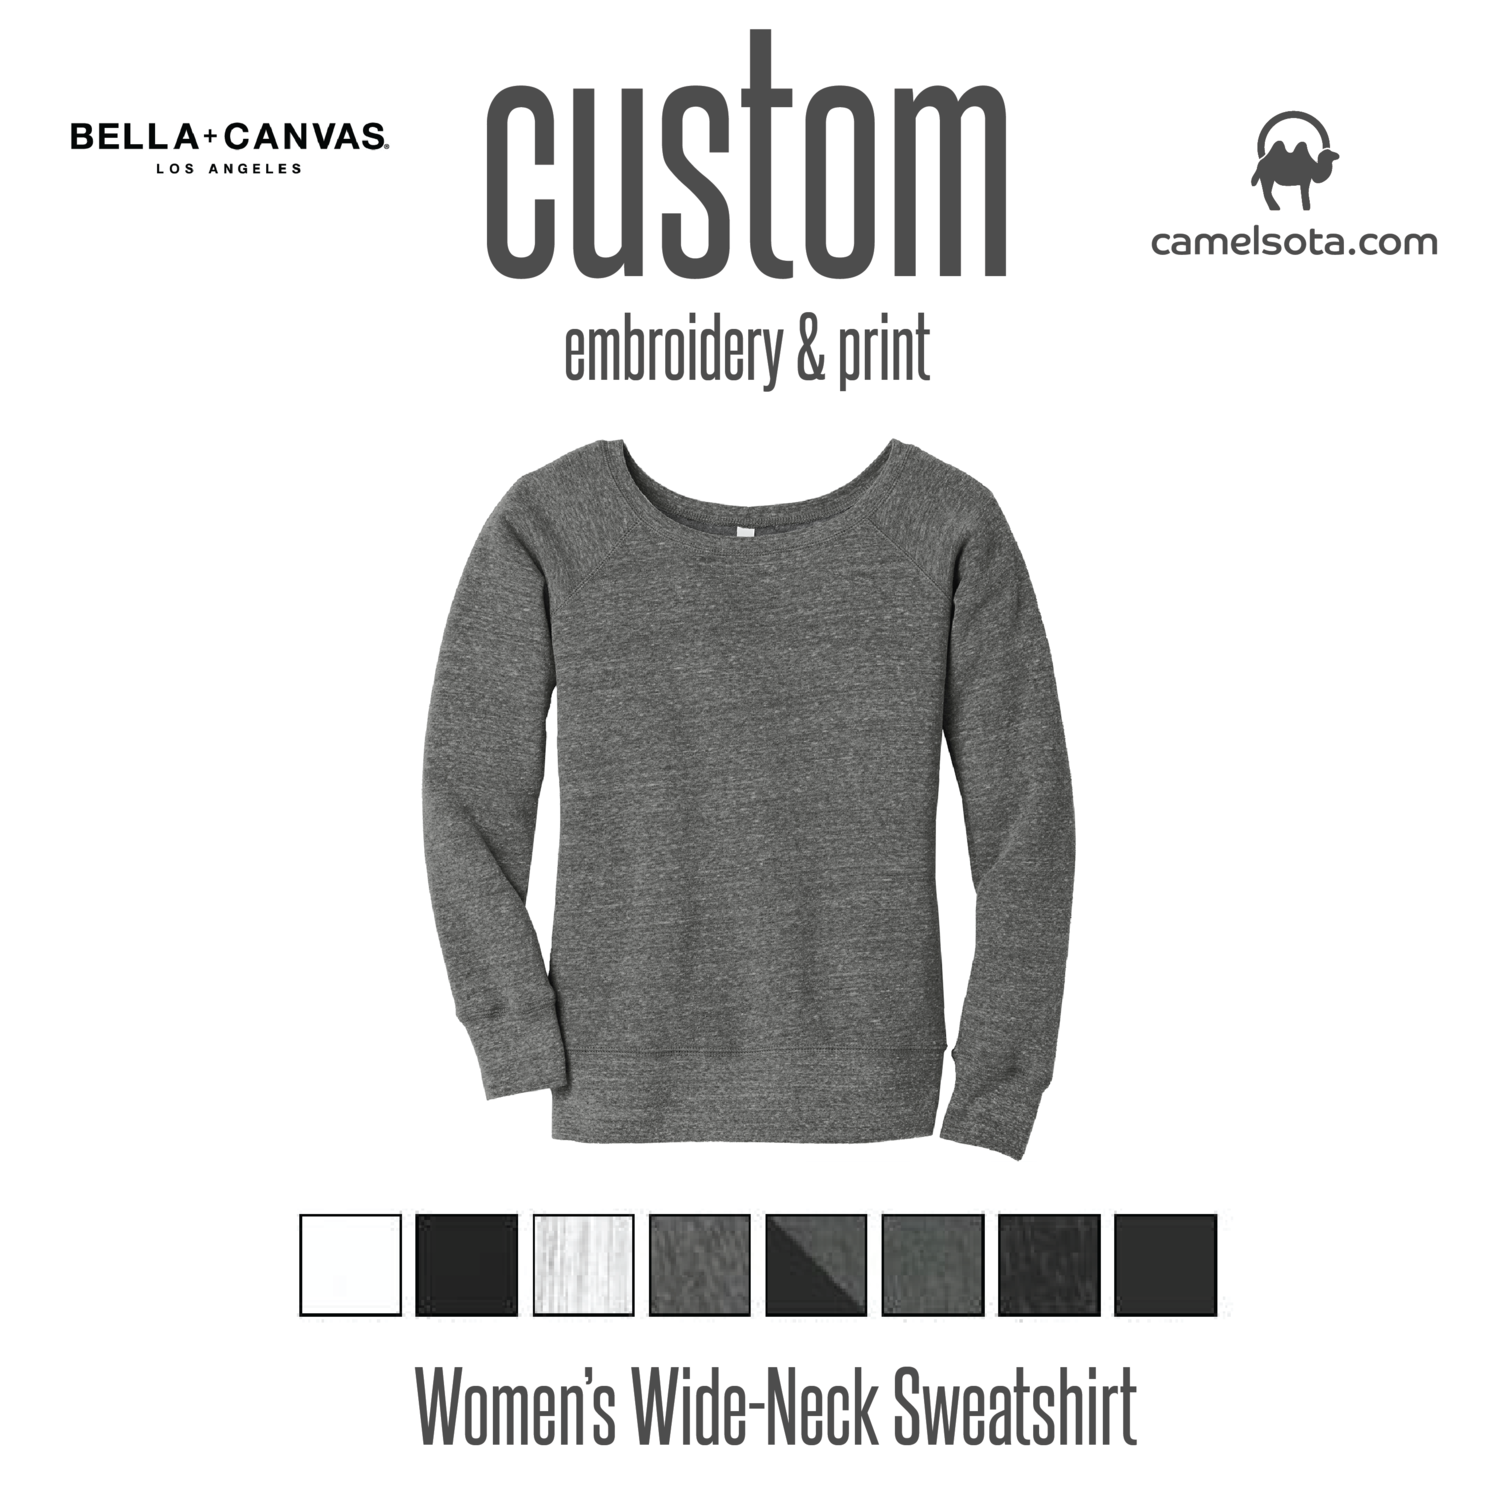 Custom Women's Wide-Neck Sweatshirt